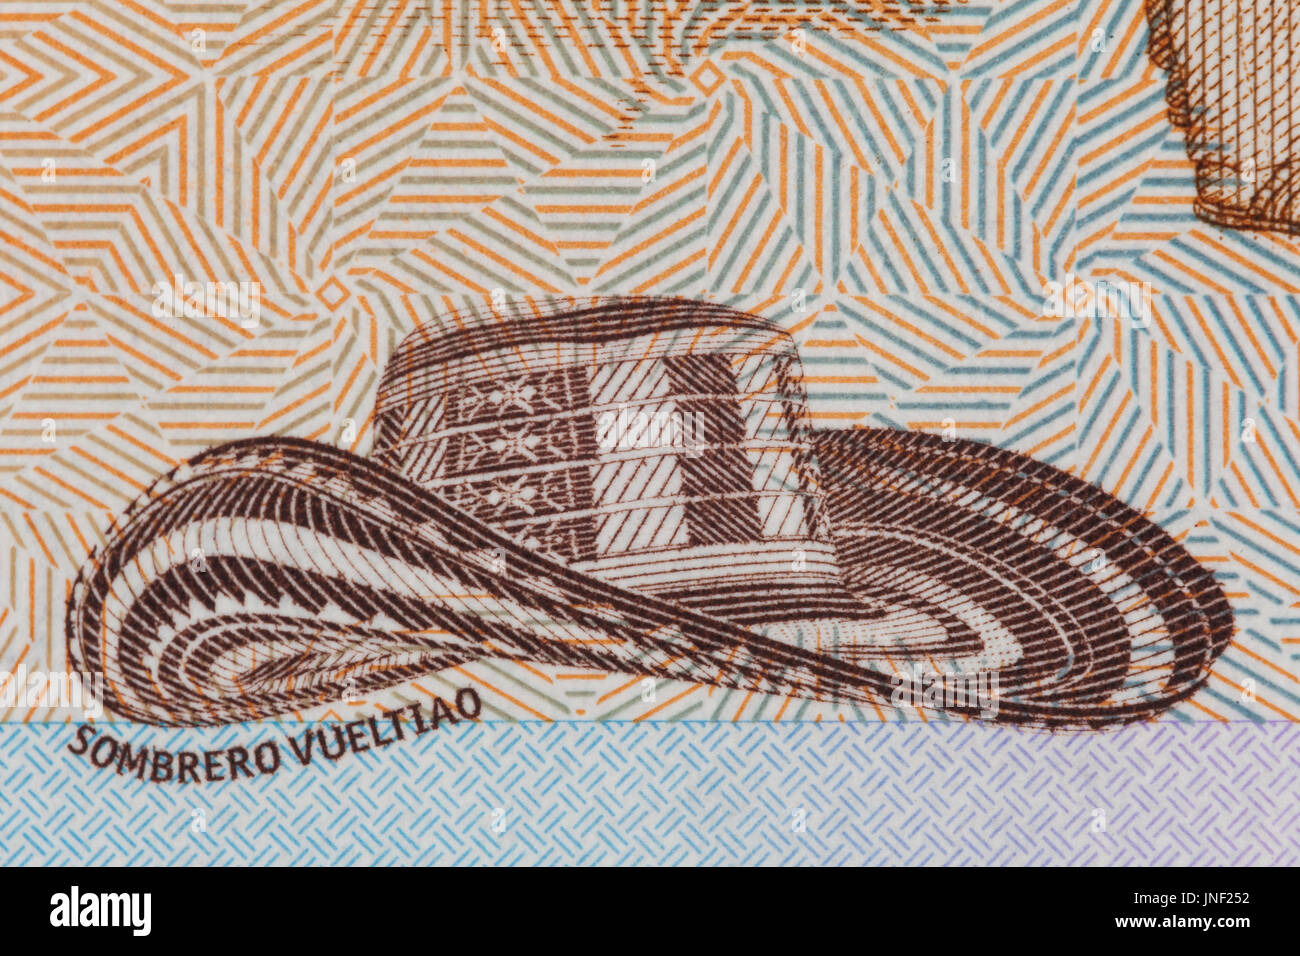 Traditional hat from Colombia  Sombrero vueltiao  on the twenty thousand  Colombian pesos bill - d8e0db1fae5